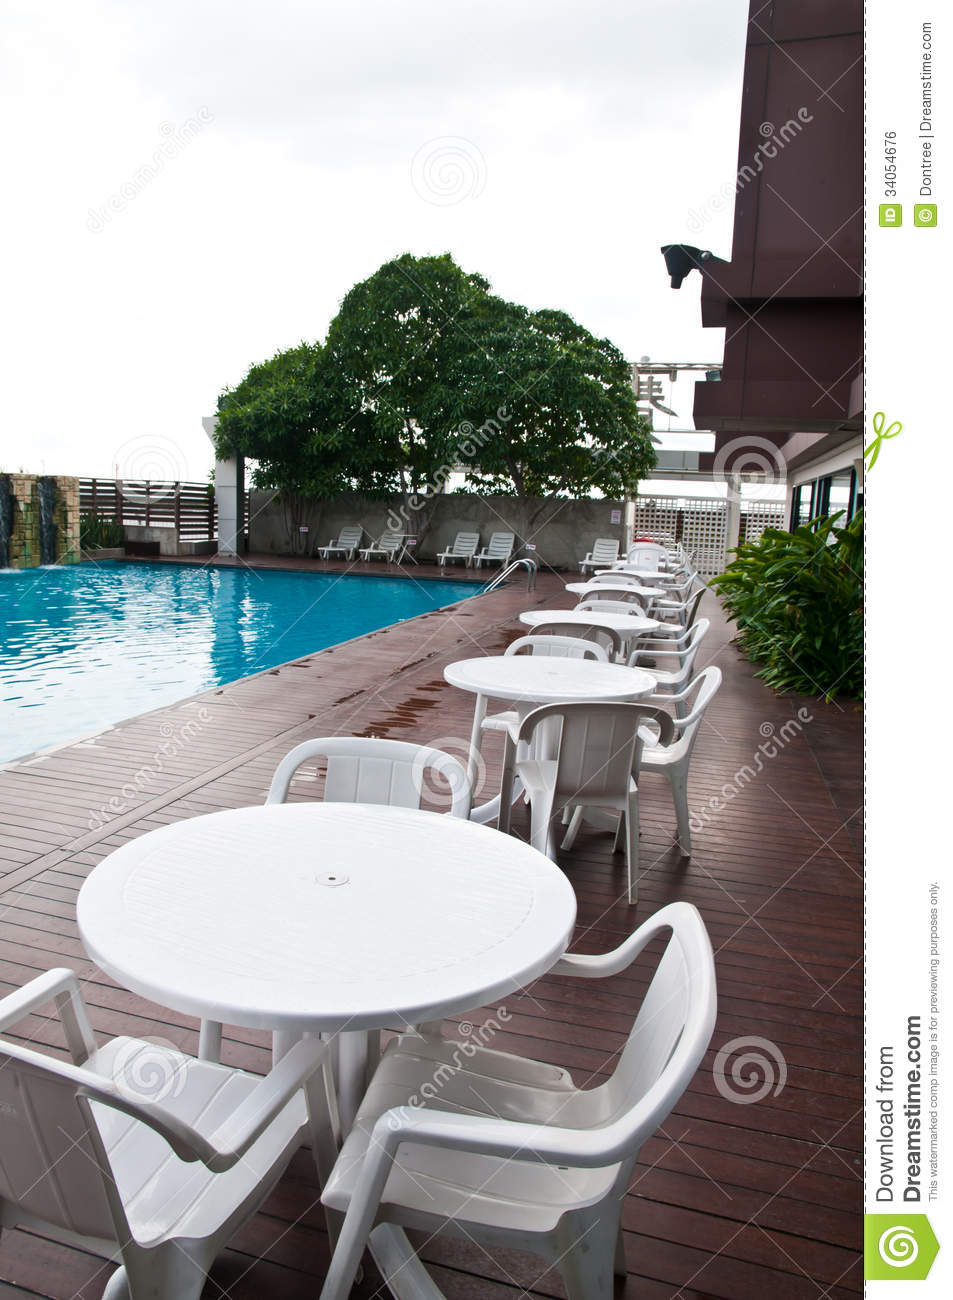 Chairs Standing Against The Swimming Pool Royalty Free Stock Image Image 34054676